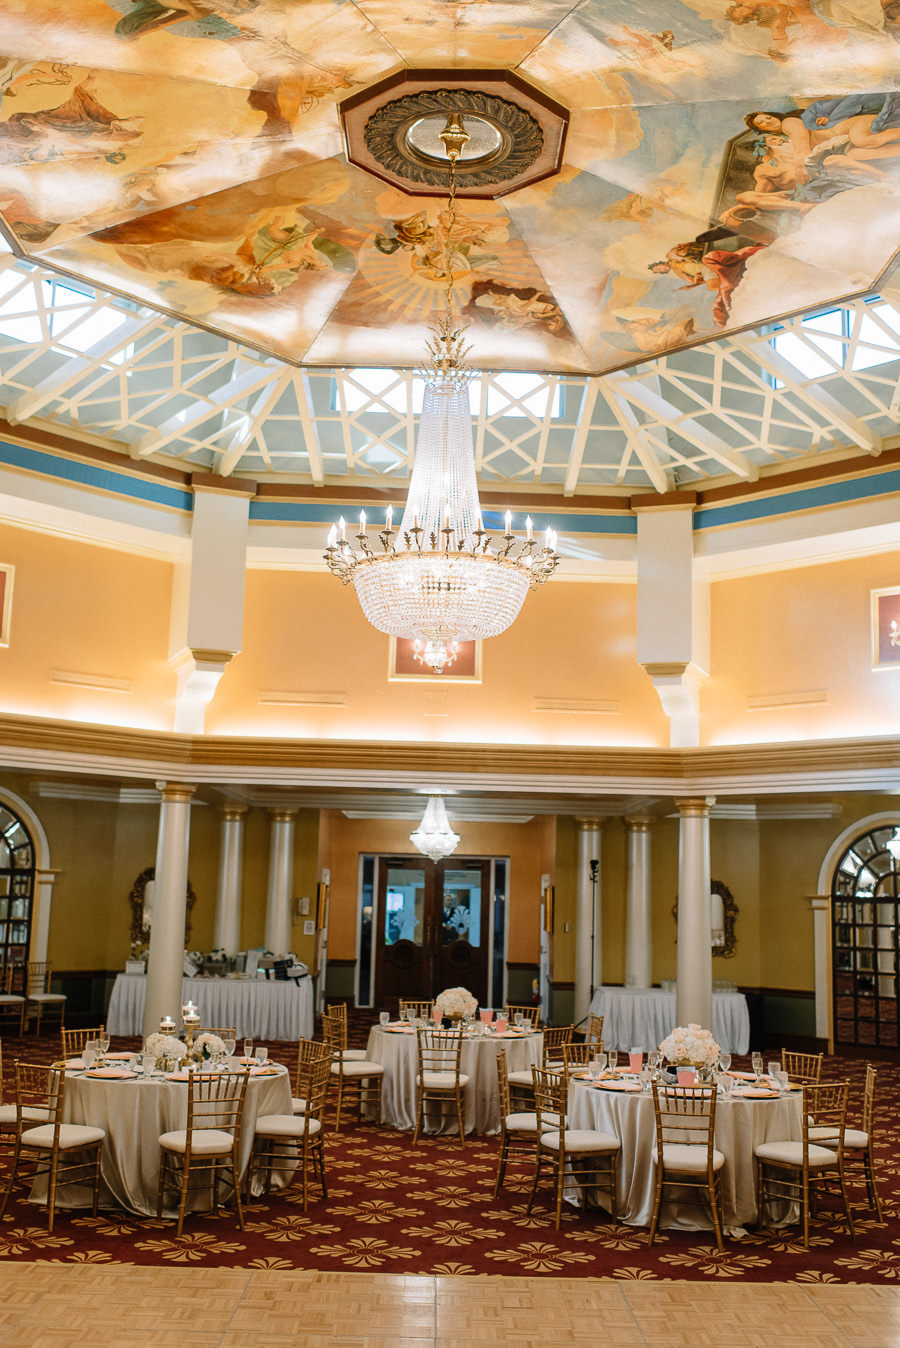 Gold Ivory and Blush Ballroom Wedding Reception Decor at Tampa Bay Wedding Venue Safety Harbor Resort & Spa with Gold Chiavari Chairs, Low White Floral Centerpieces | Tampa Bay Wedding Planner Special Moments Event Planning | Signature Event Rentals